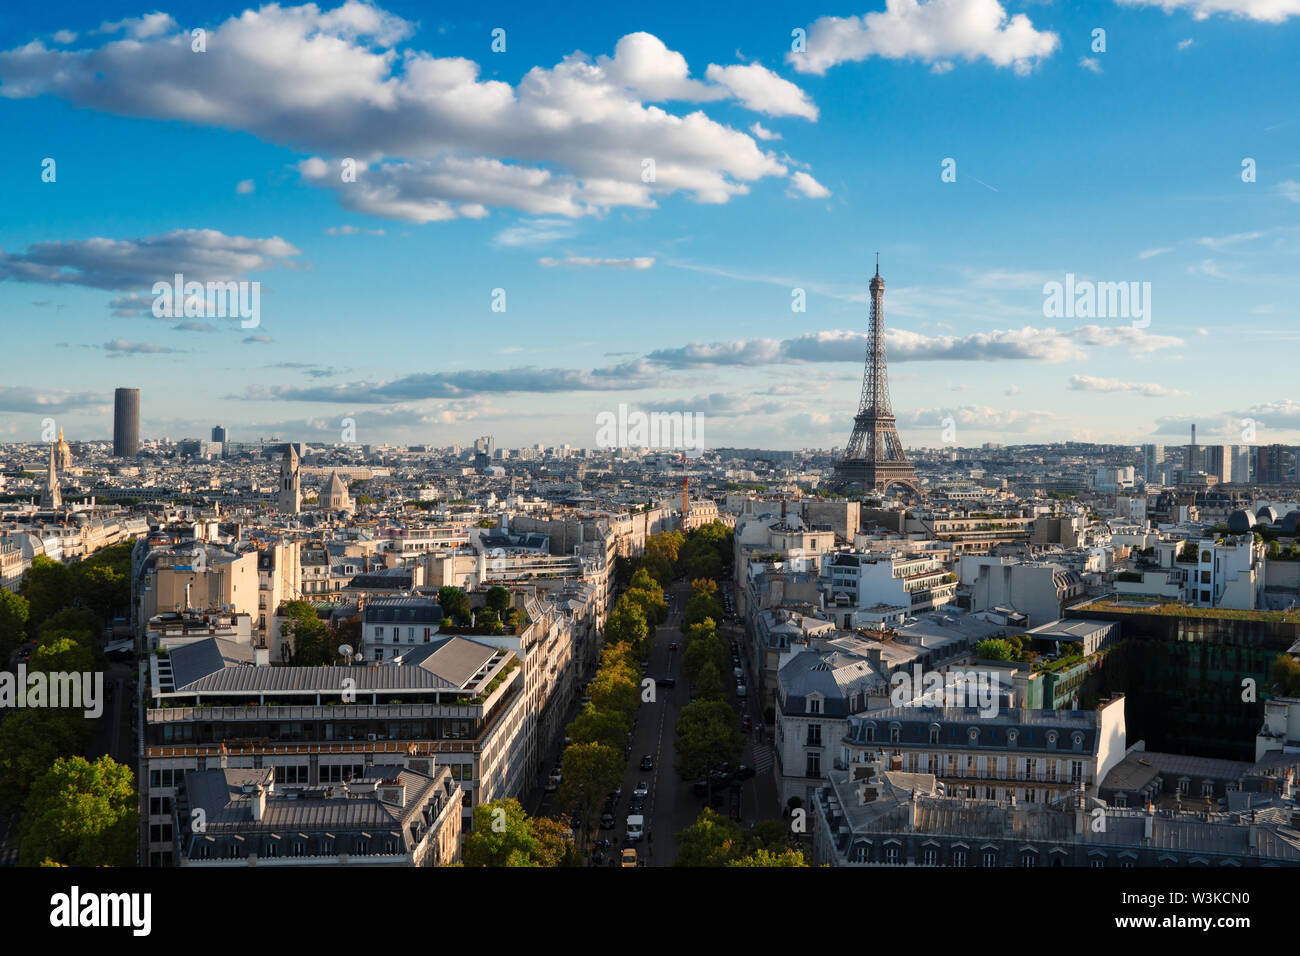 Eiffel Tower iconic landmark and Paris old roofs from above, Paris France - Stock Image